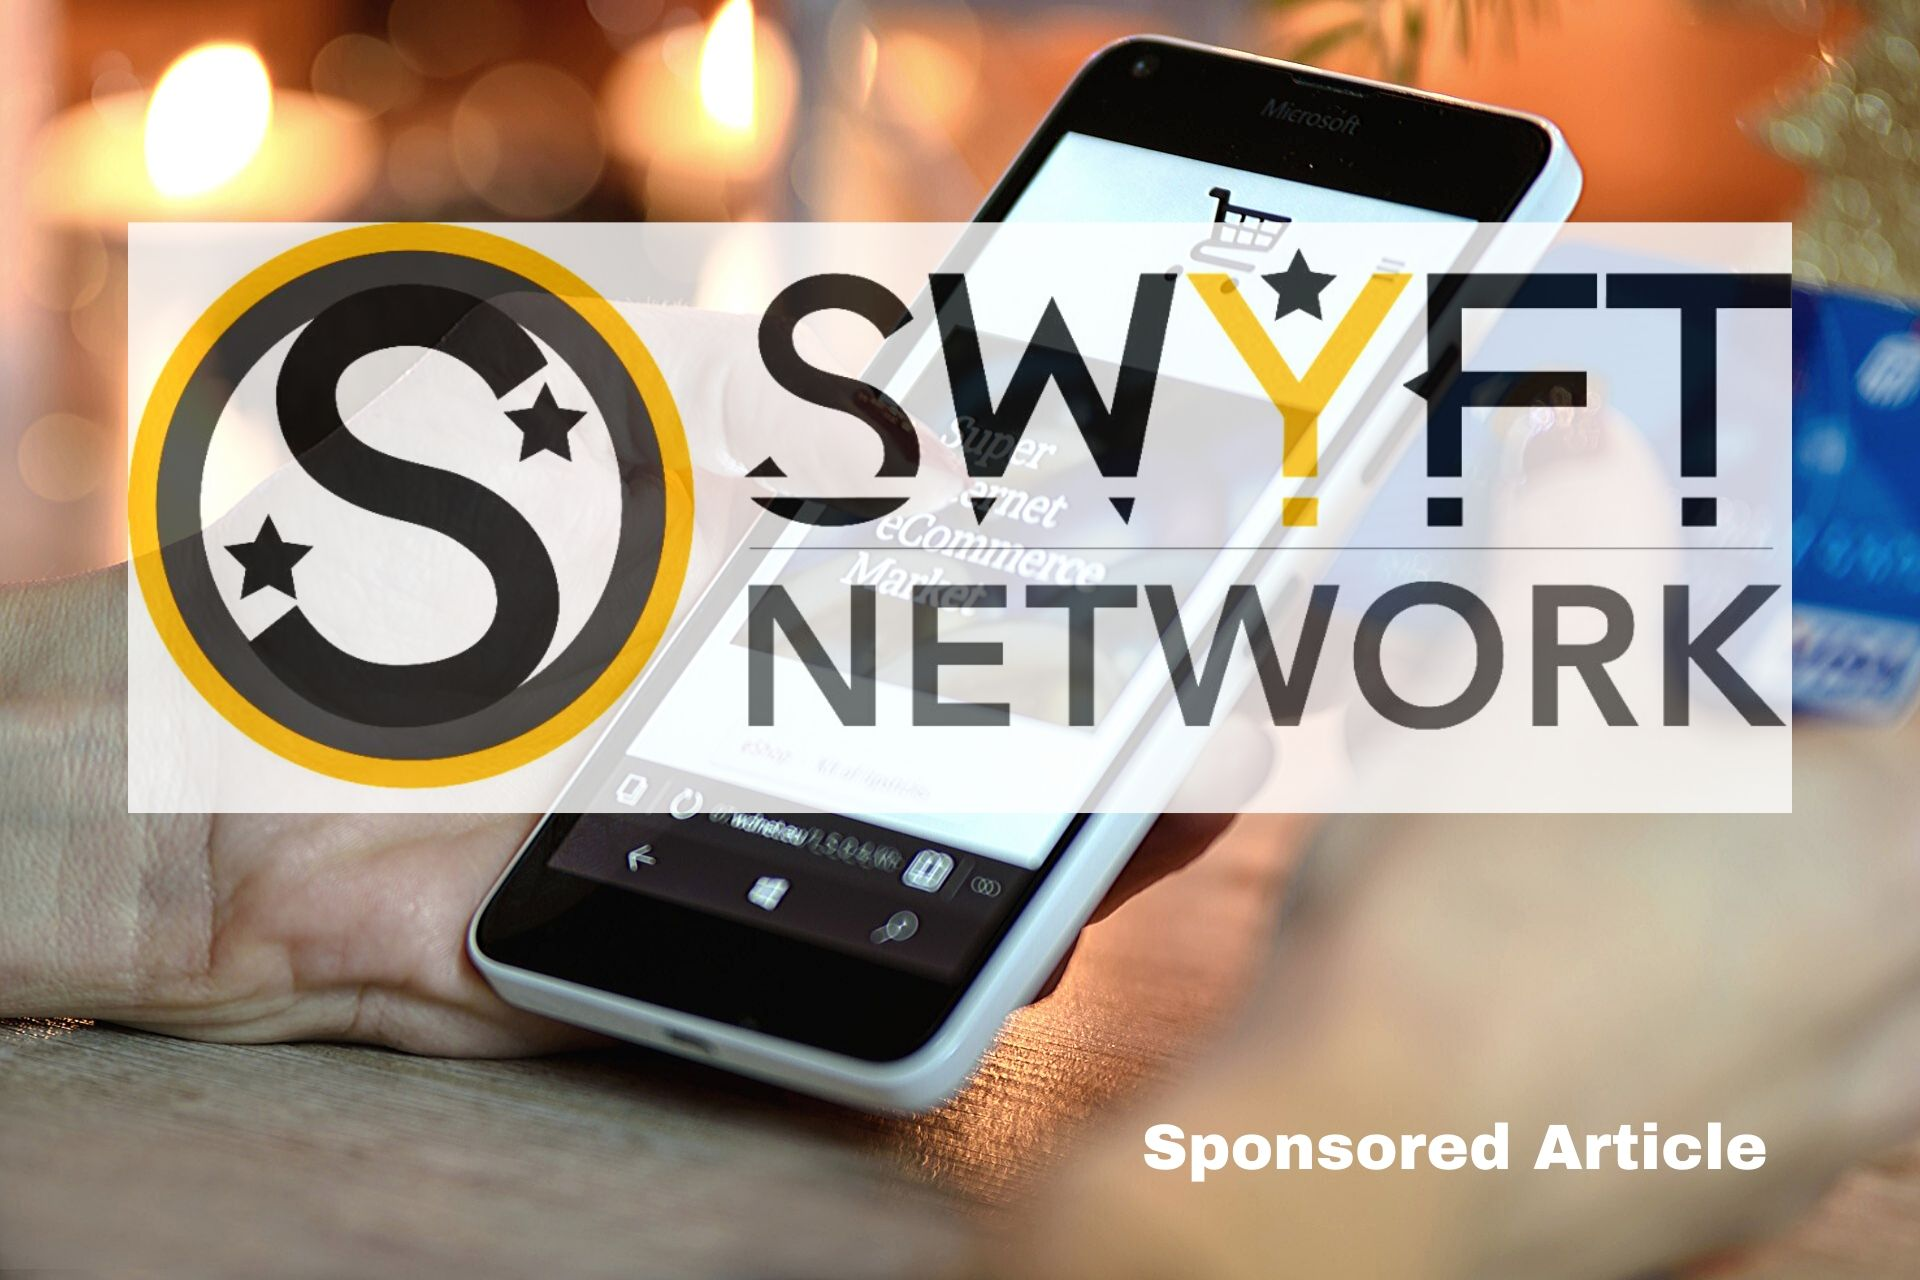 SWYFT Network: Catering to the Global Demand for a Crypto-based Mobile Payments Ecosystem With an Incentivized Approach to All Abilities